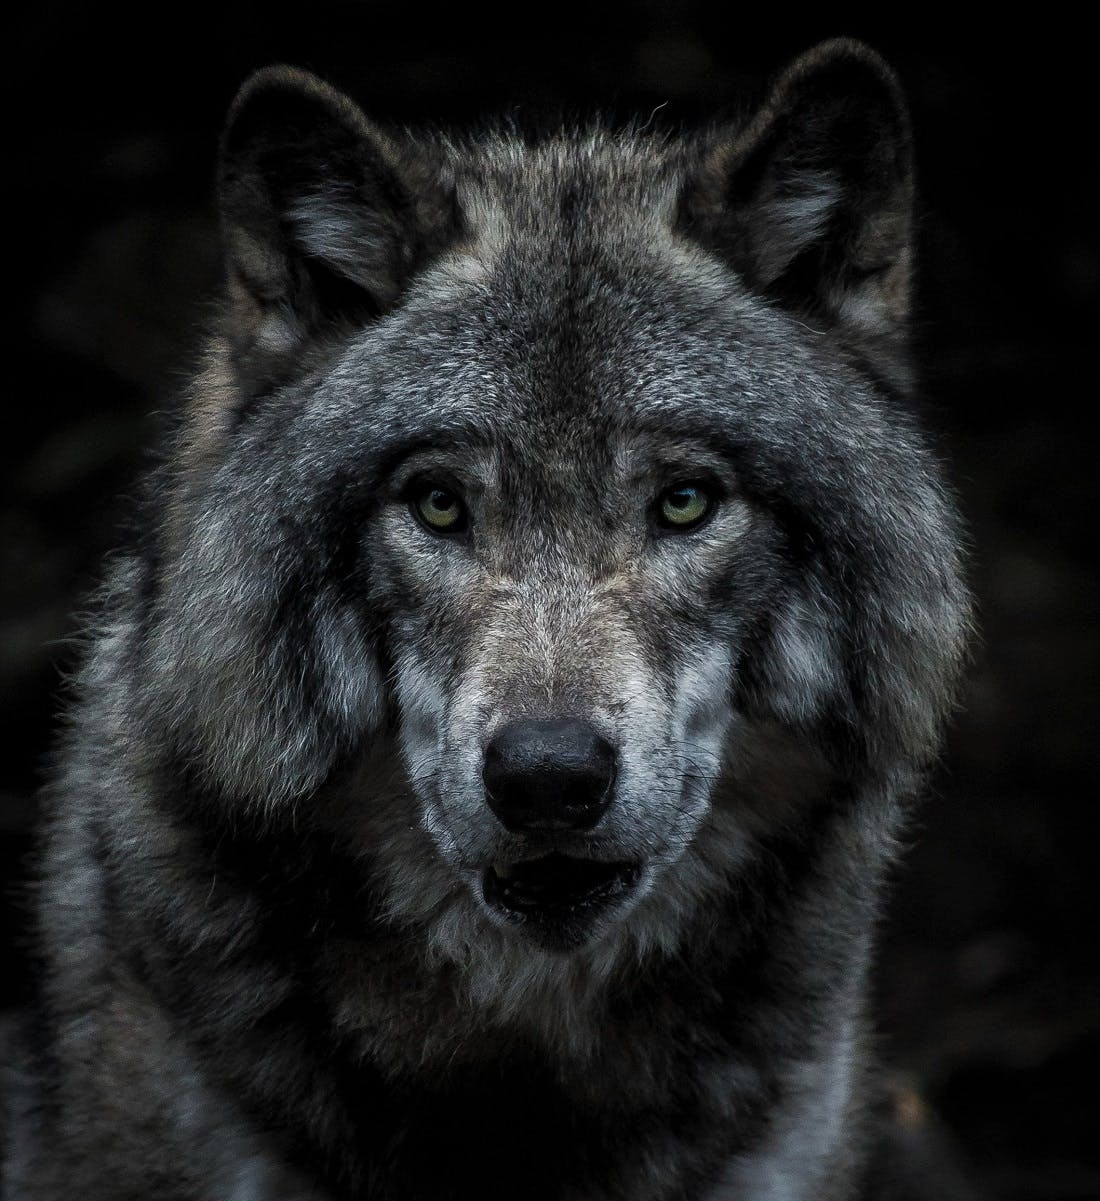 A portrait of a wolf. Wolves are keystone species who affect their whole ecosystem positively.